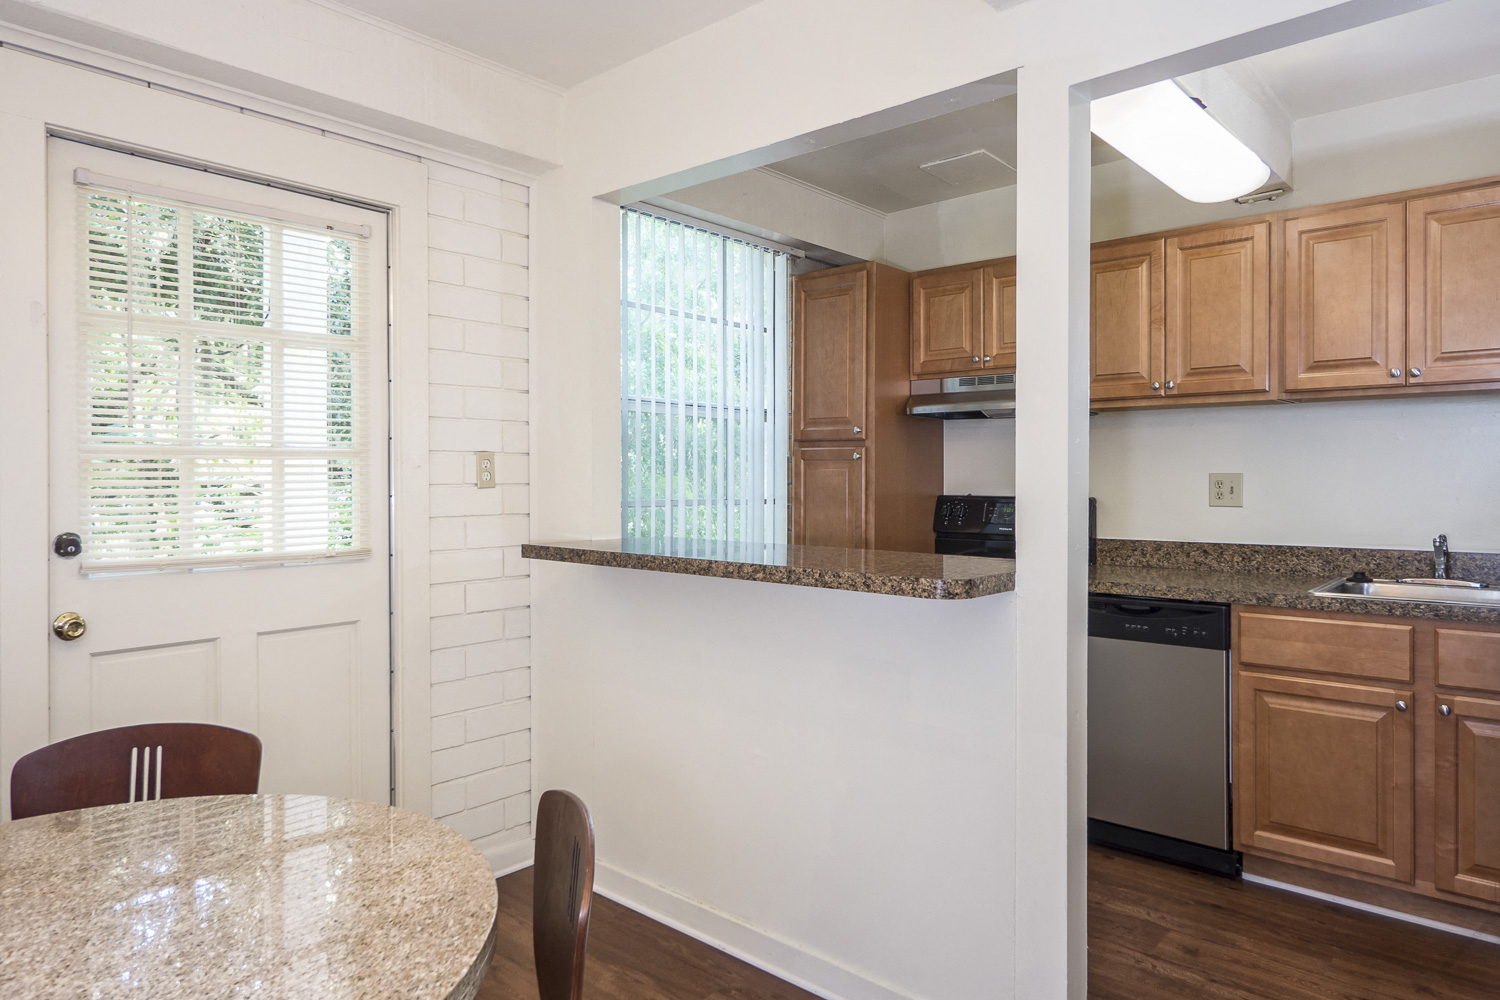 Newly Renovated Kitchens with Upgraded Cabinets & Counter Tops